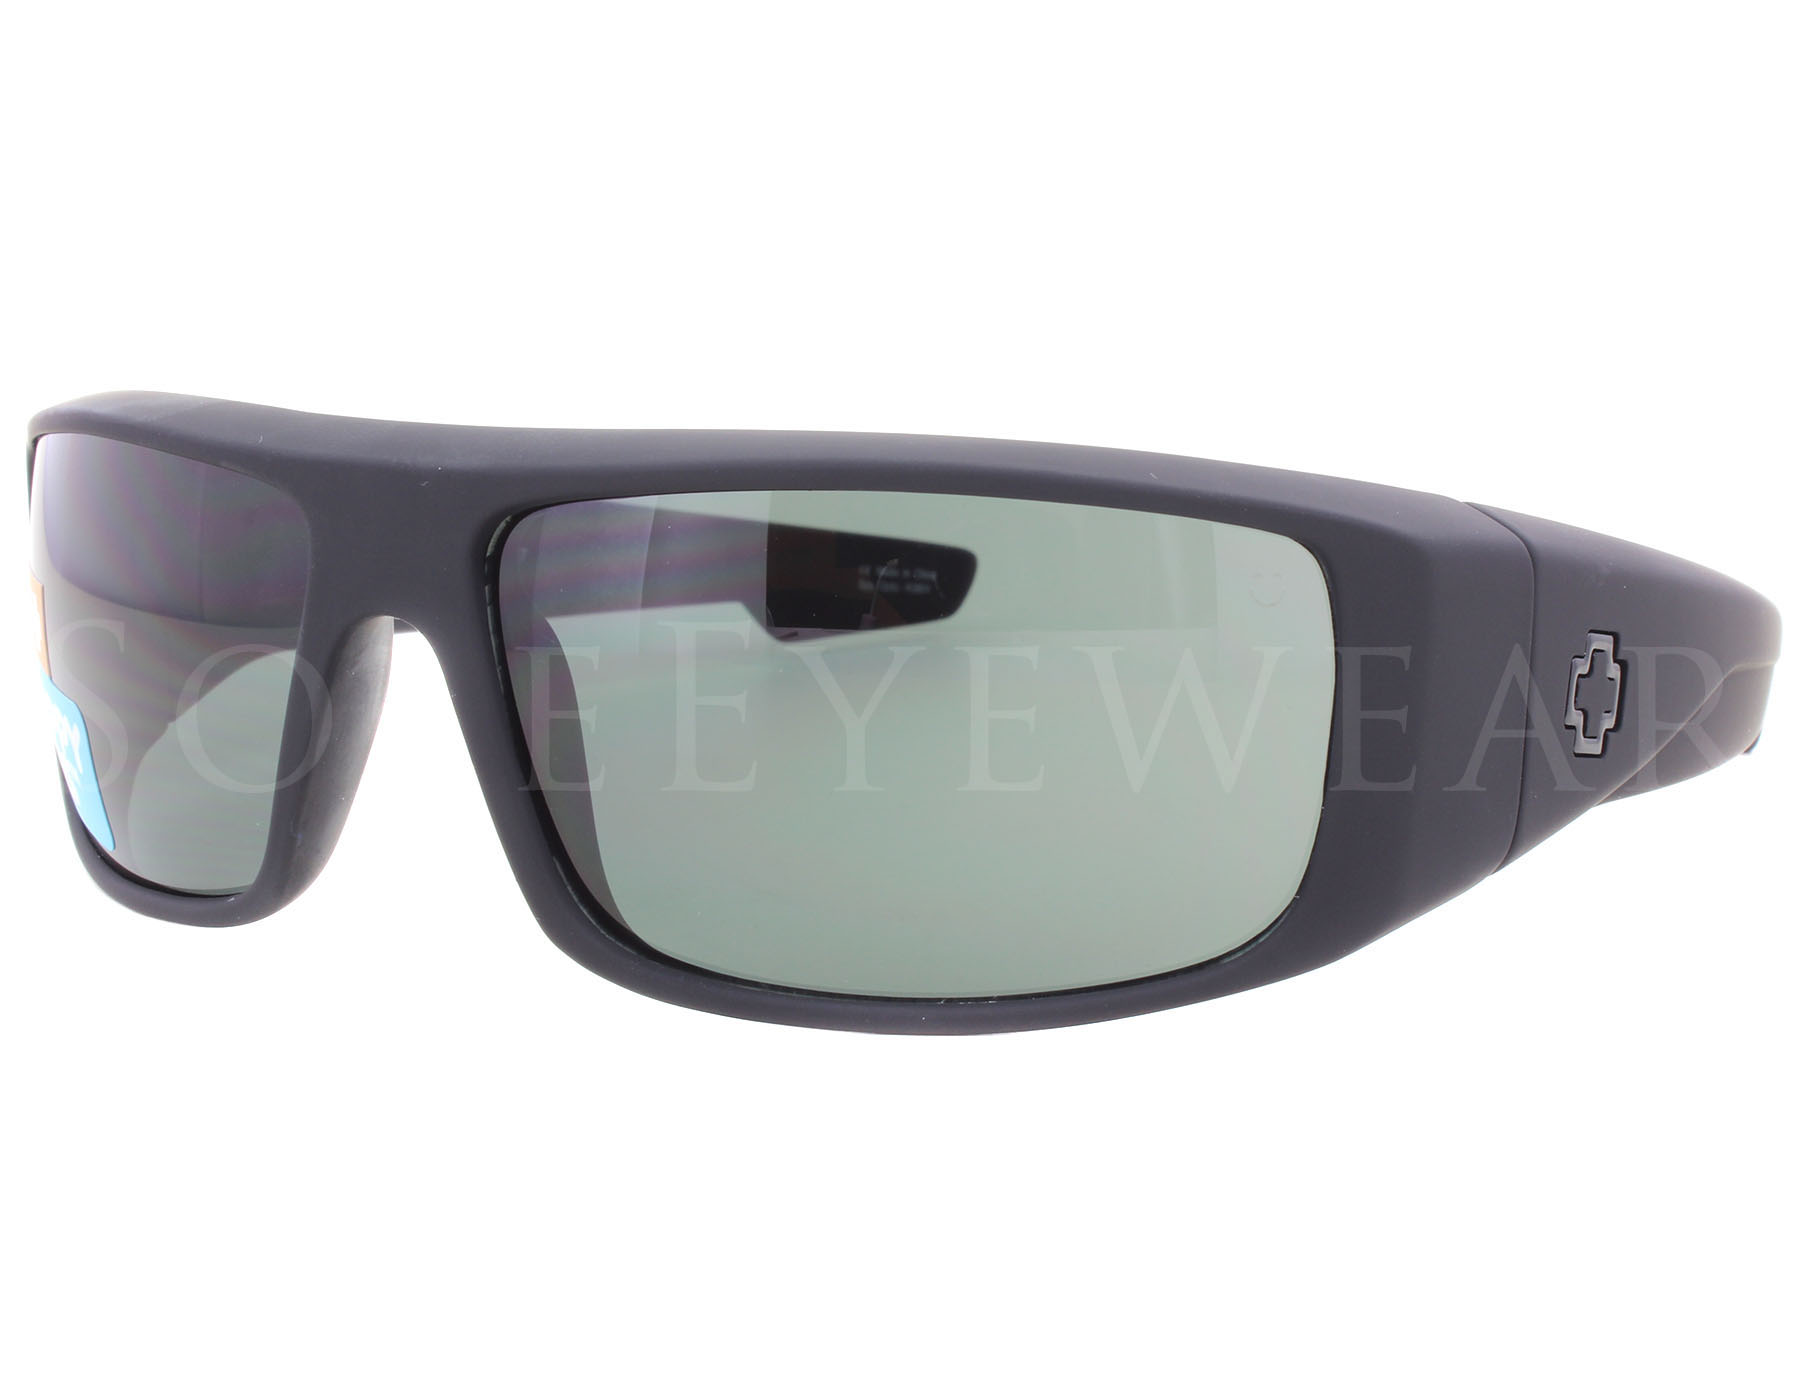 5887c3a07e Details about NEW Spy Optics Logan 670939973863 Soft Matte Black   Happy  Grey Green Sunglasses